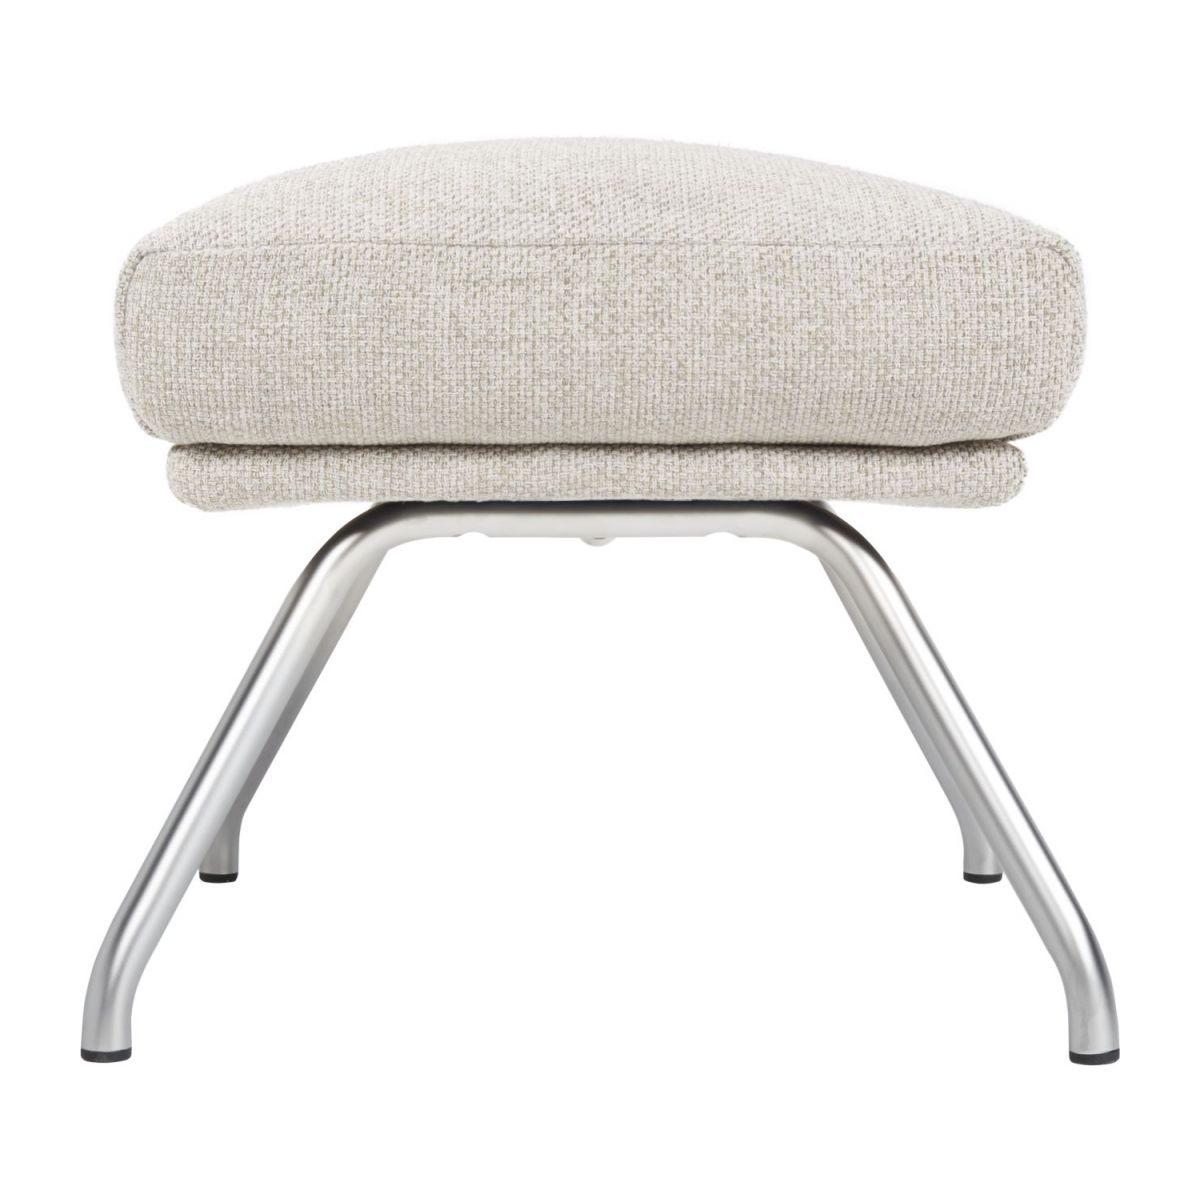 Footstool in Lecce fabric, nature with matt metal legs n°3